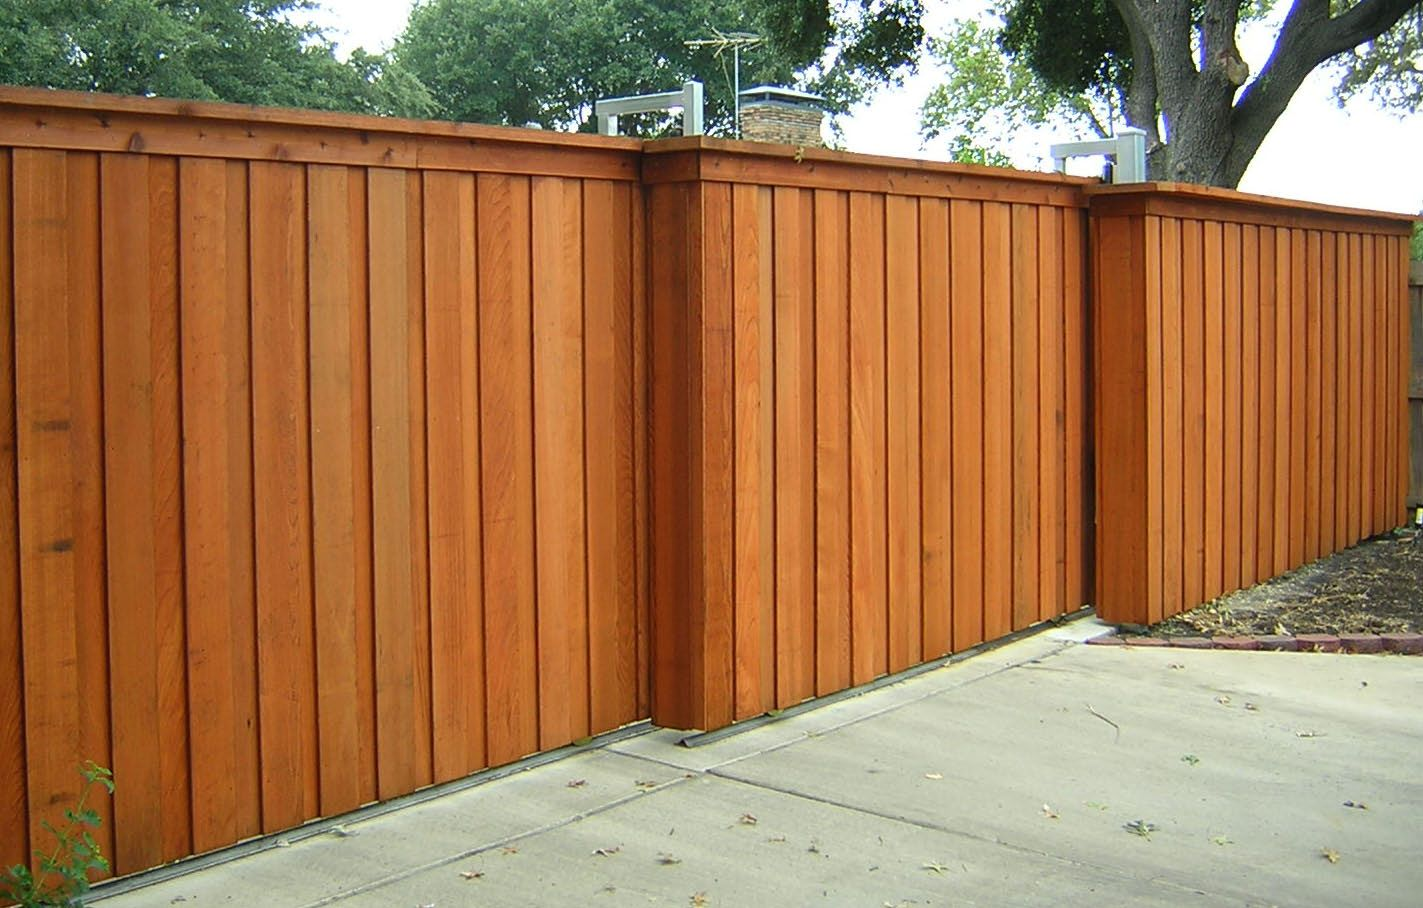 Wood Fence Designs Ideas creative brick and wood fence design Fence